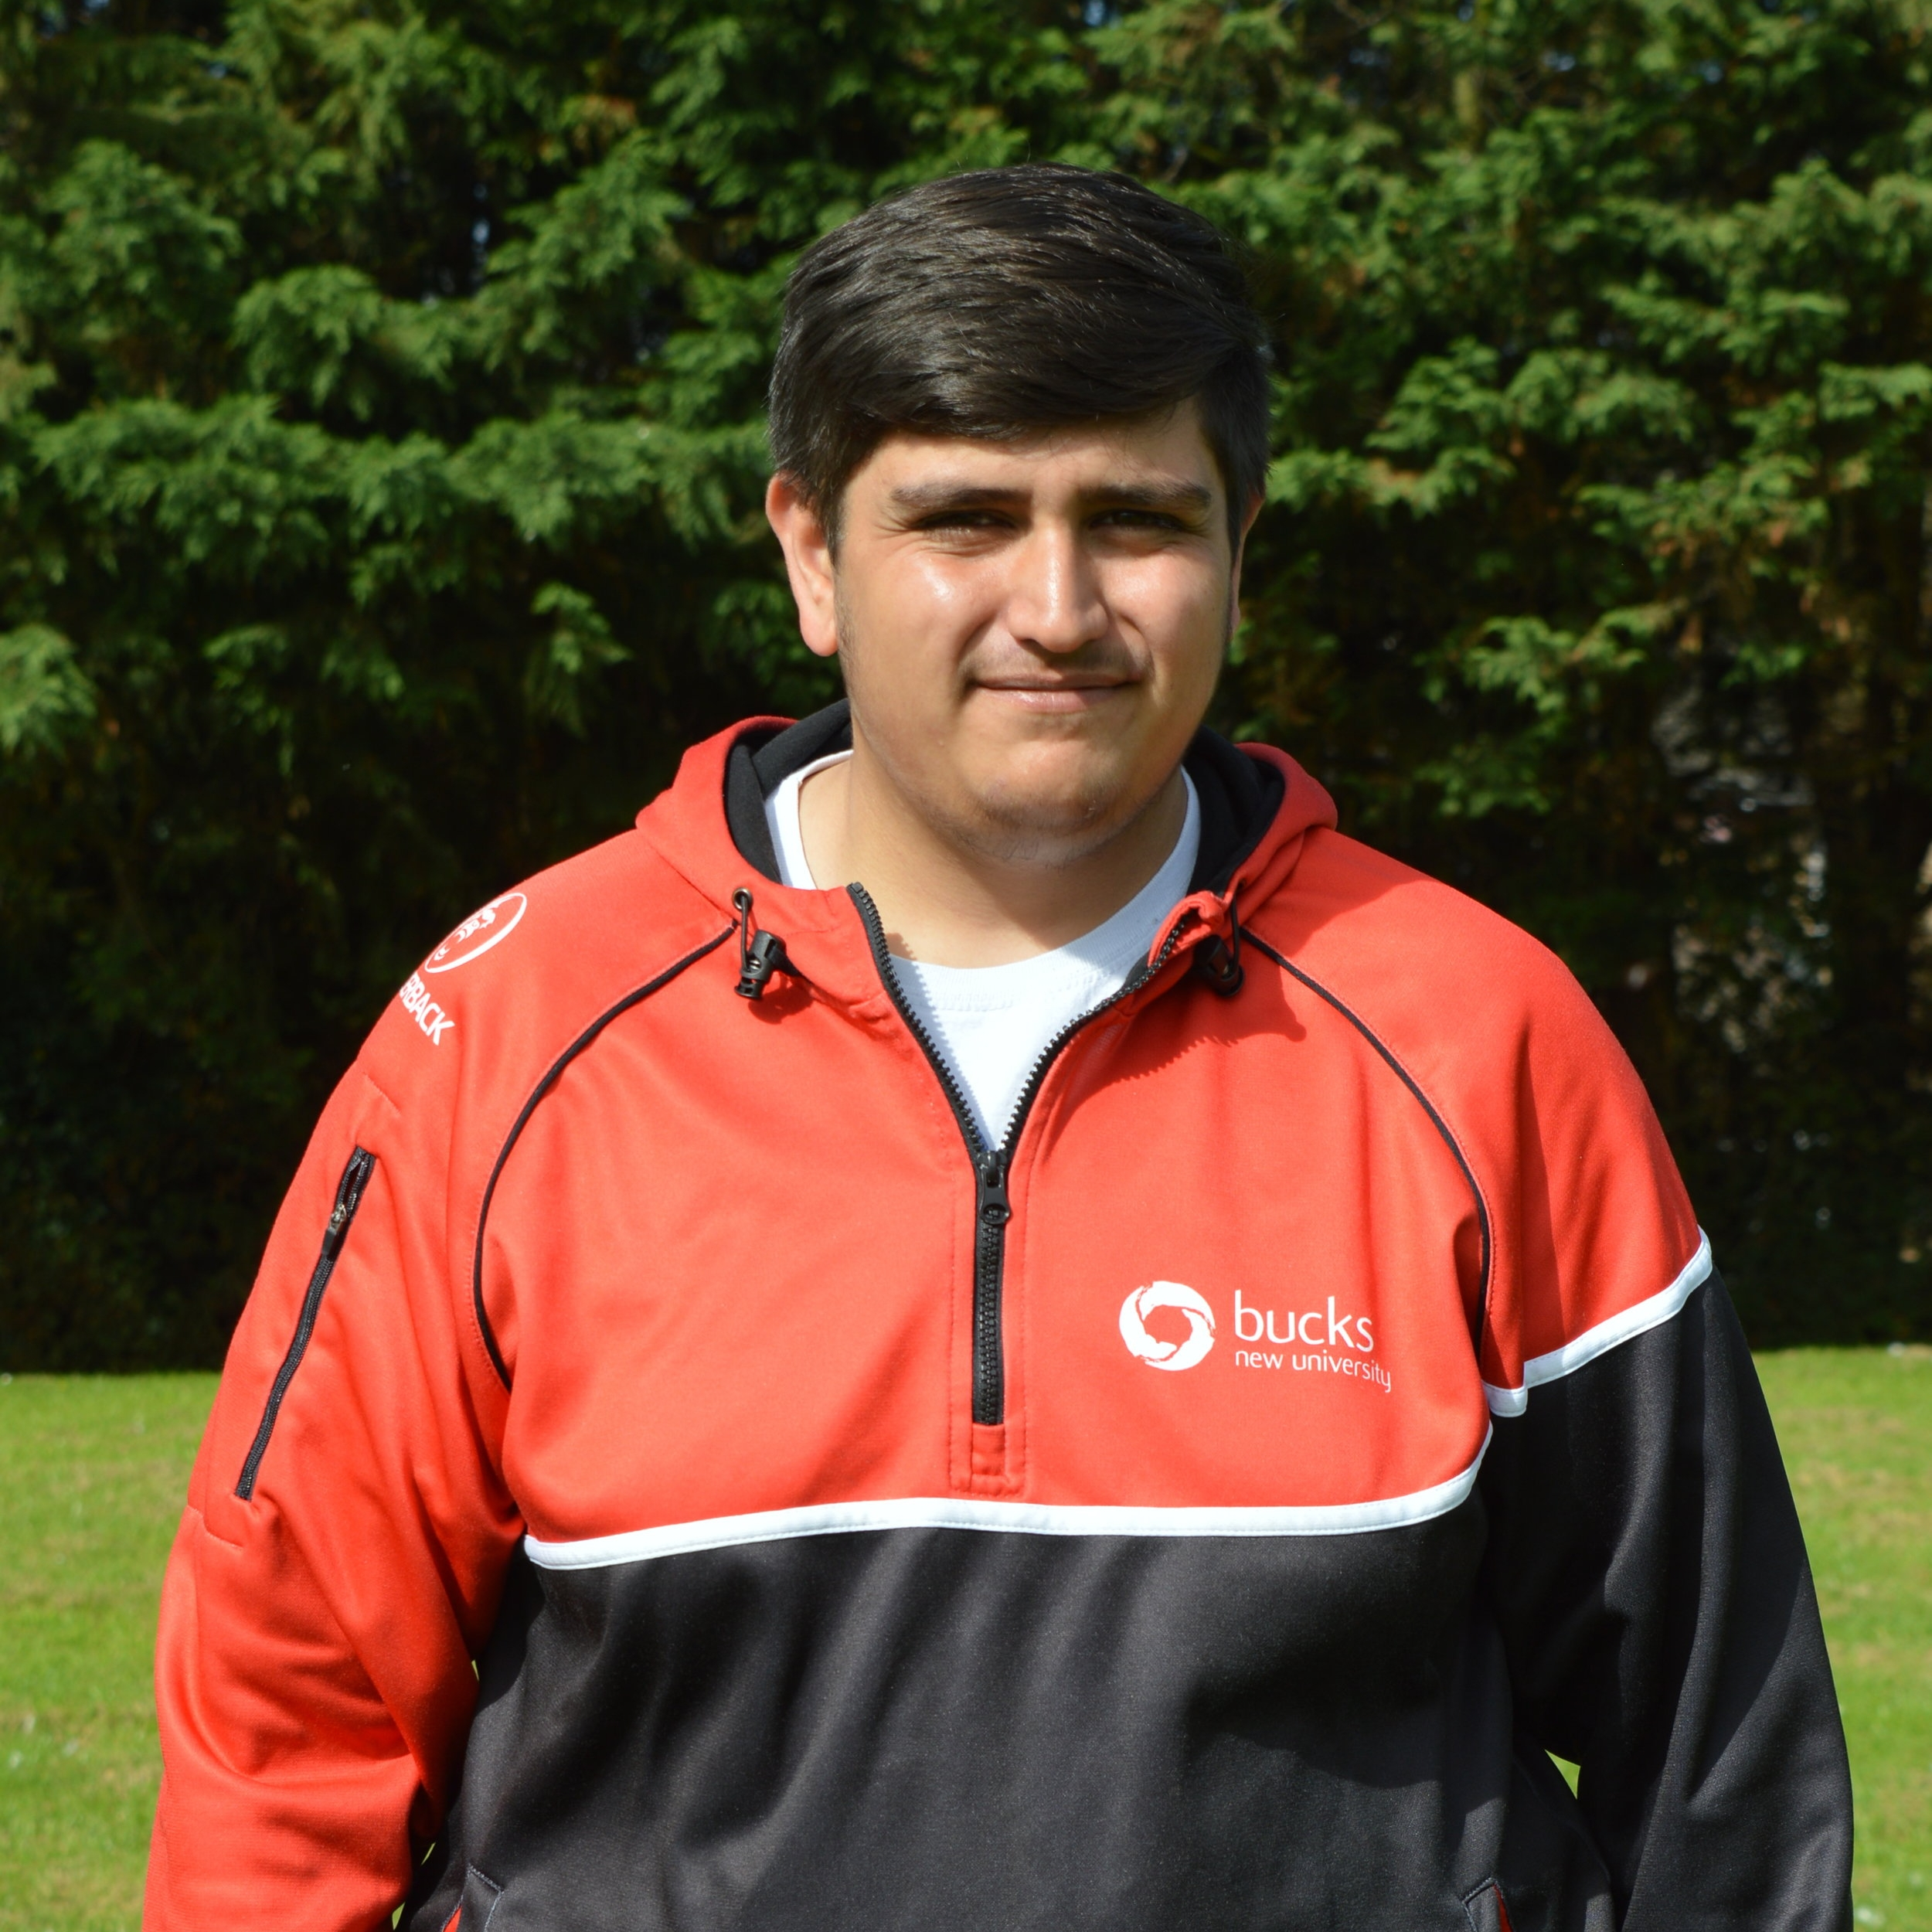 Ibby Baig - As a youngster Ibby mainly played cricket. Playing in his spare time as well as at school. He is passionate about a lot of different sports and has his level 1 in football and handball. He also has a level 2 in multi skills. Ibby is one of our most experienced coaches and has great knowledge in a wide range of sports. This range of sports is a huge asset to us at BPS and we were able to utilise Ibbys experience at our Summer Camps. He coaches at our Football Club on a Saturday morning working with all age groups. His experience is clear to see with the organisation and child involvement in all sessions.